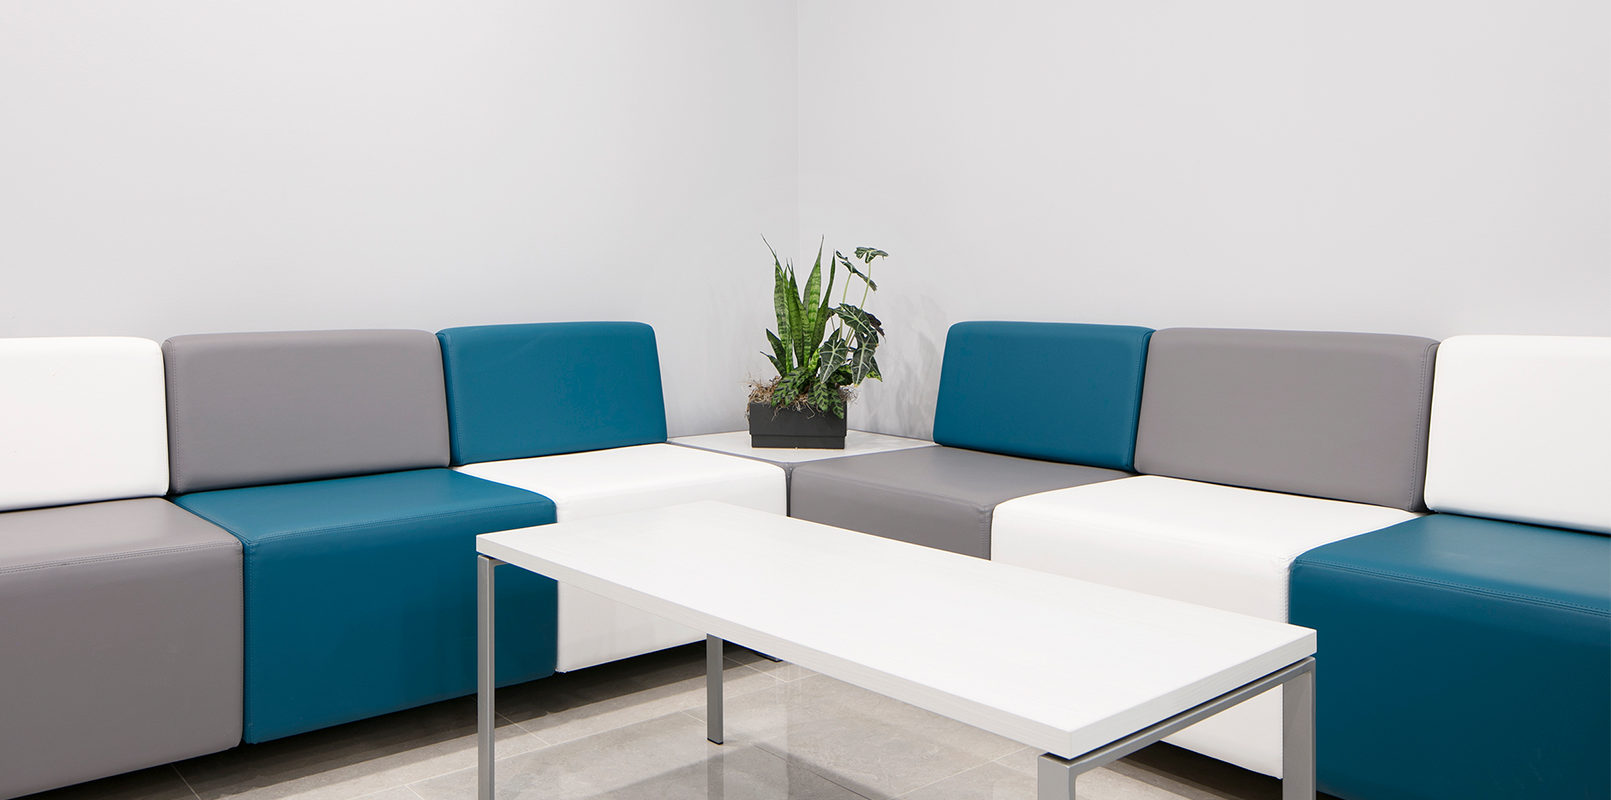 Lounge seating area with multi-coloured modular sofa chairs